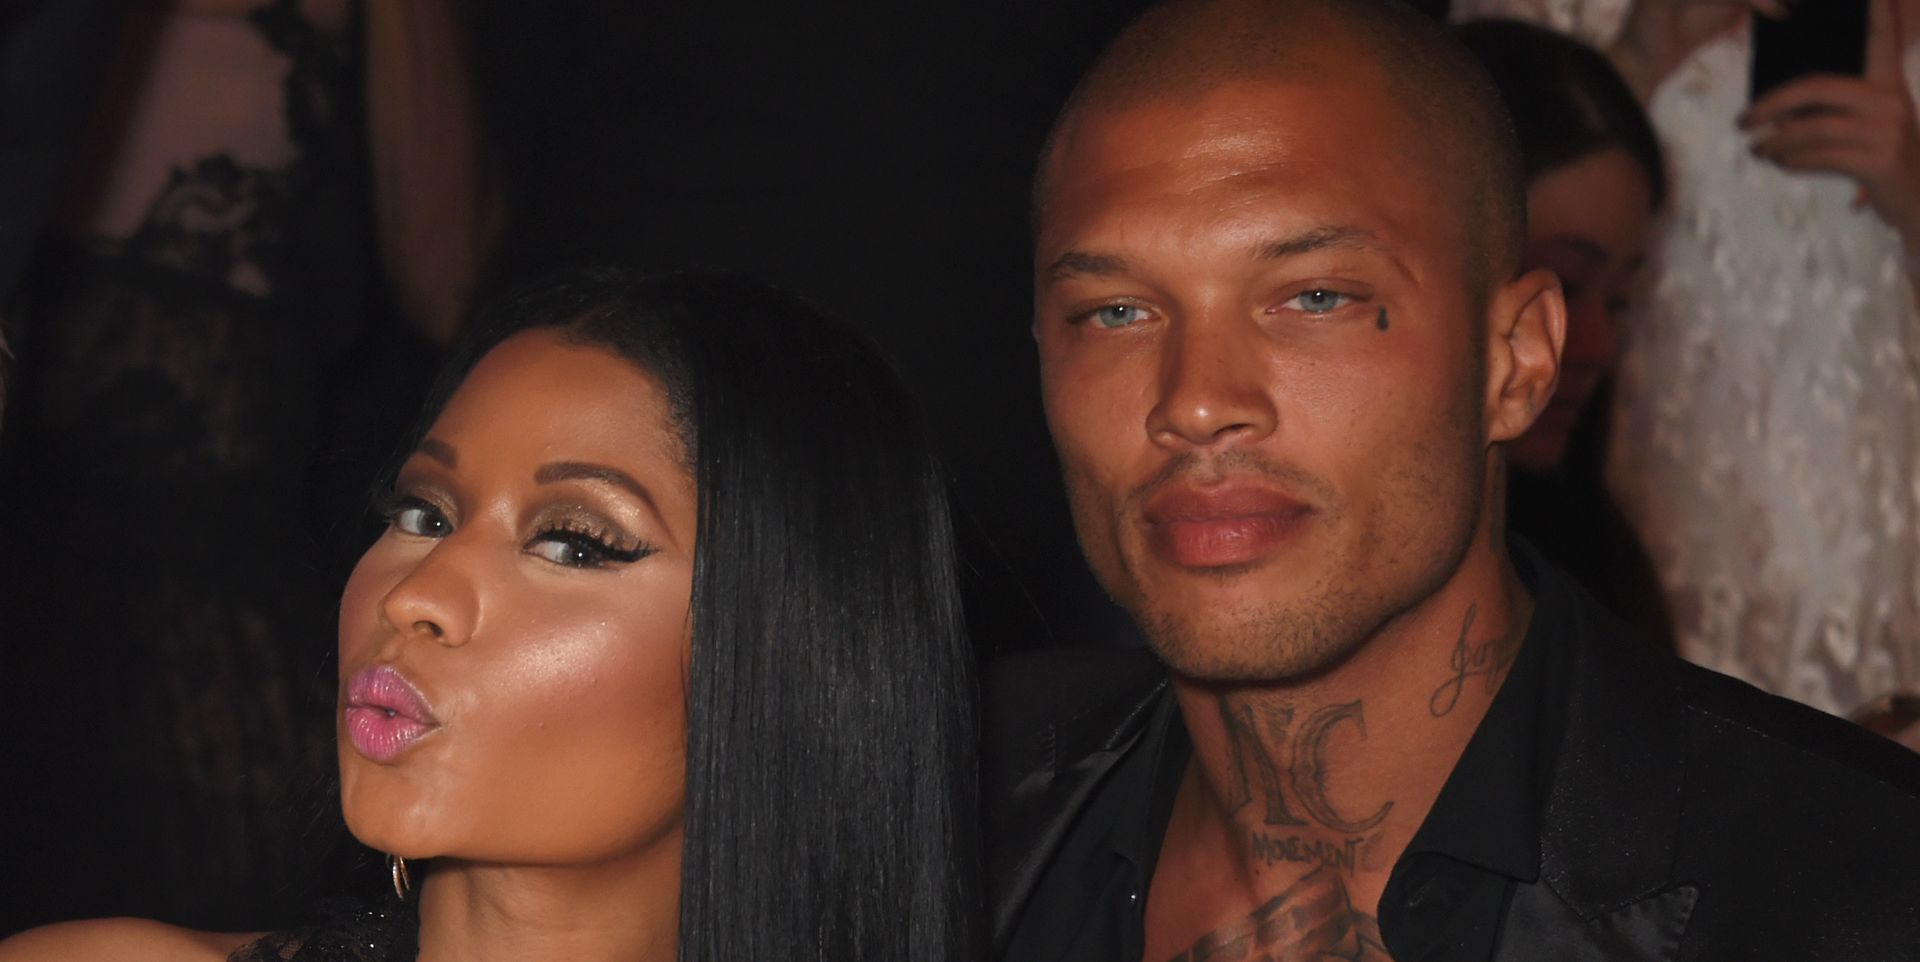 'Hot Felon' Jeremy Meeks and His Beautiful Pecs Just Hung Out With Nicki Minaj in Cannes